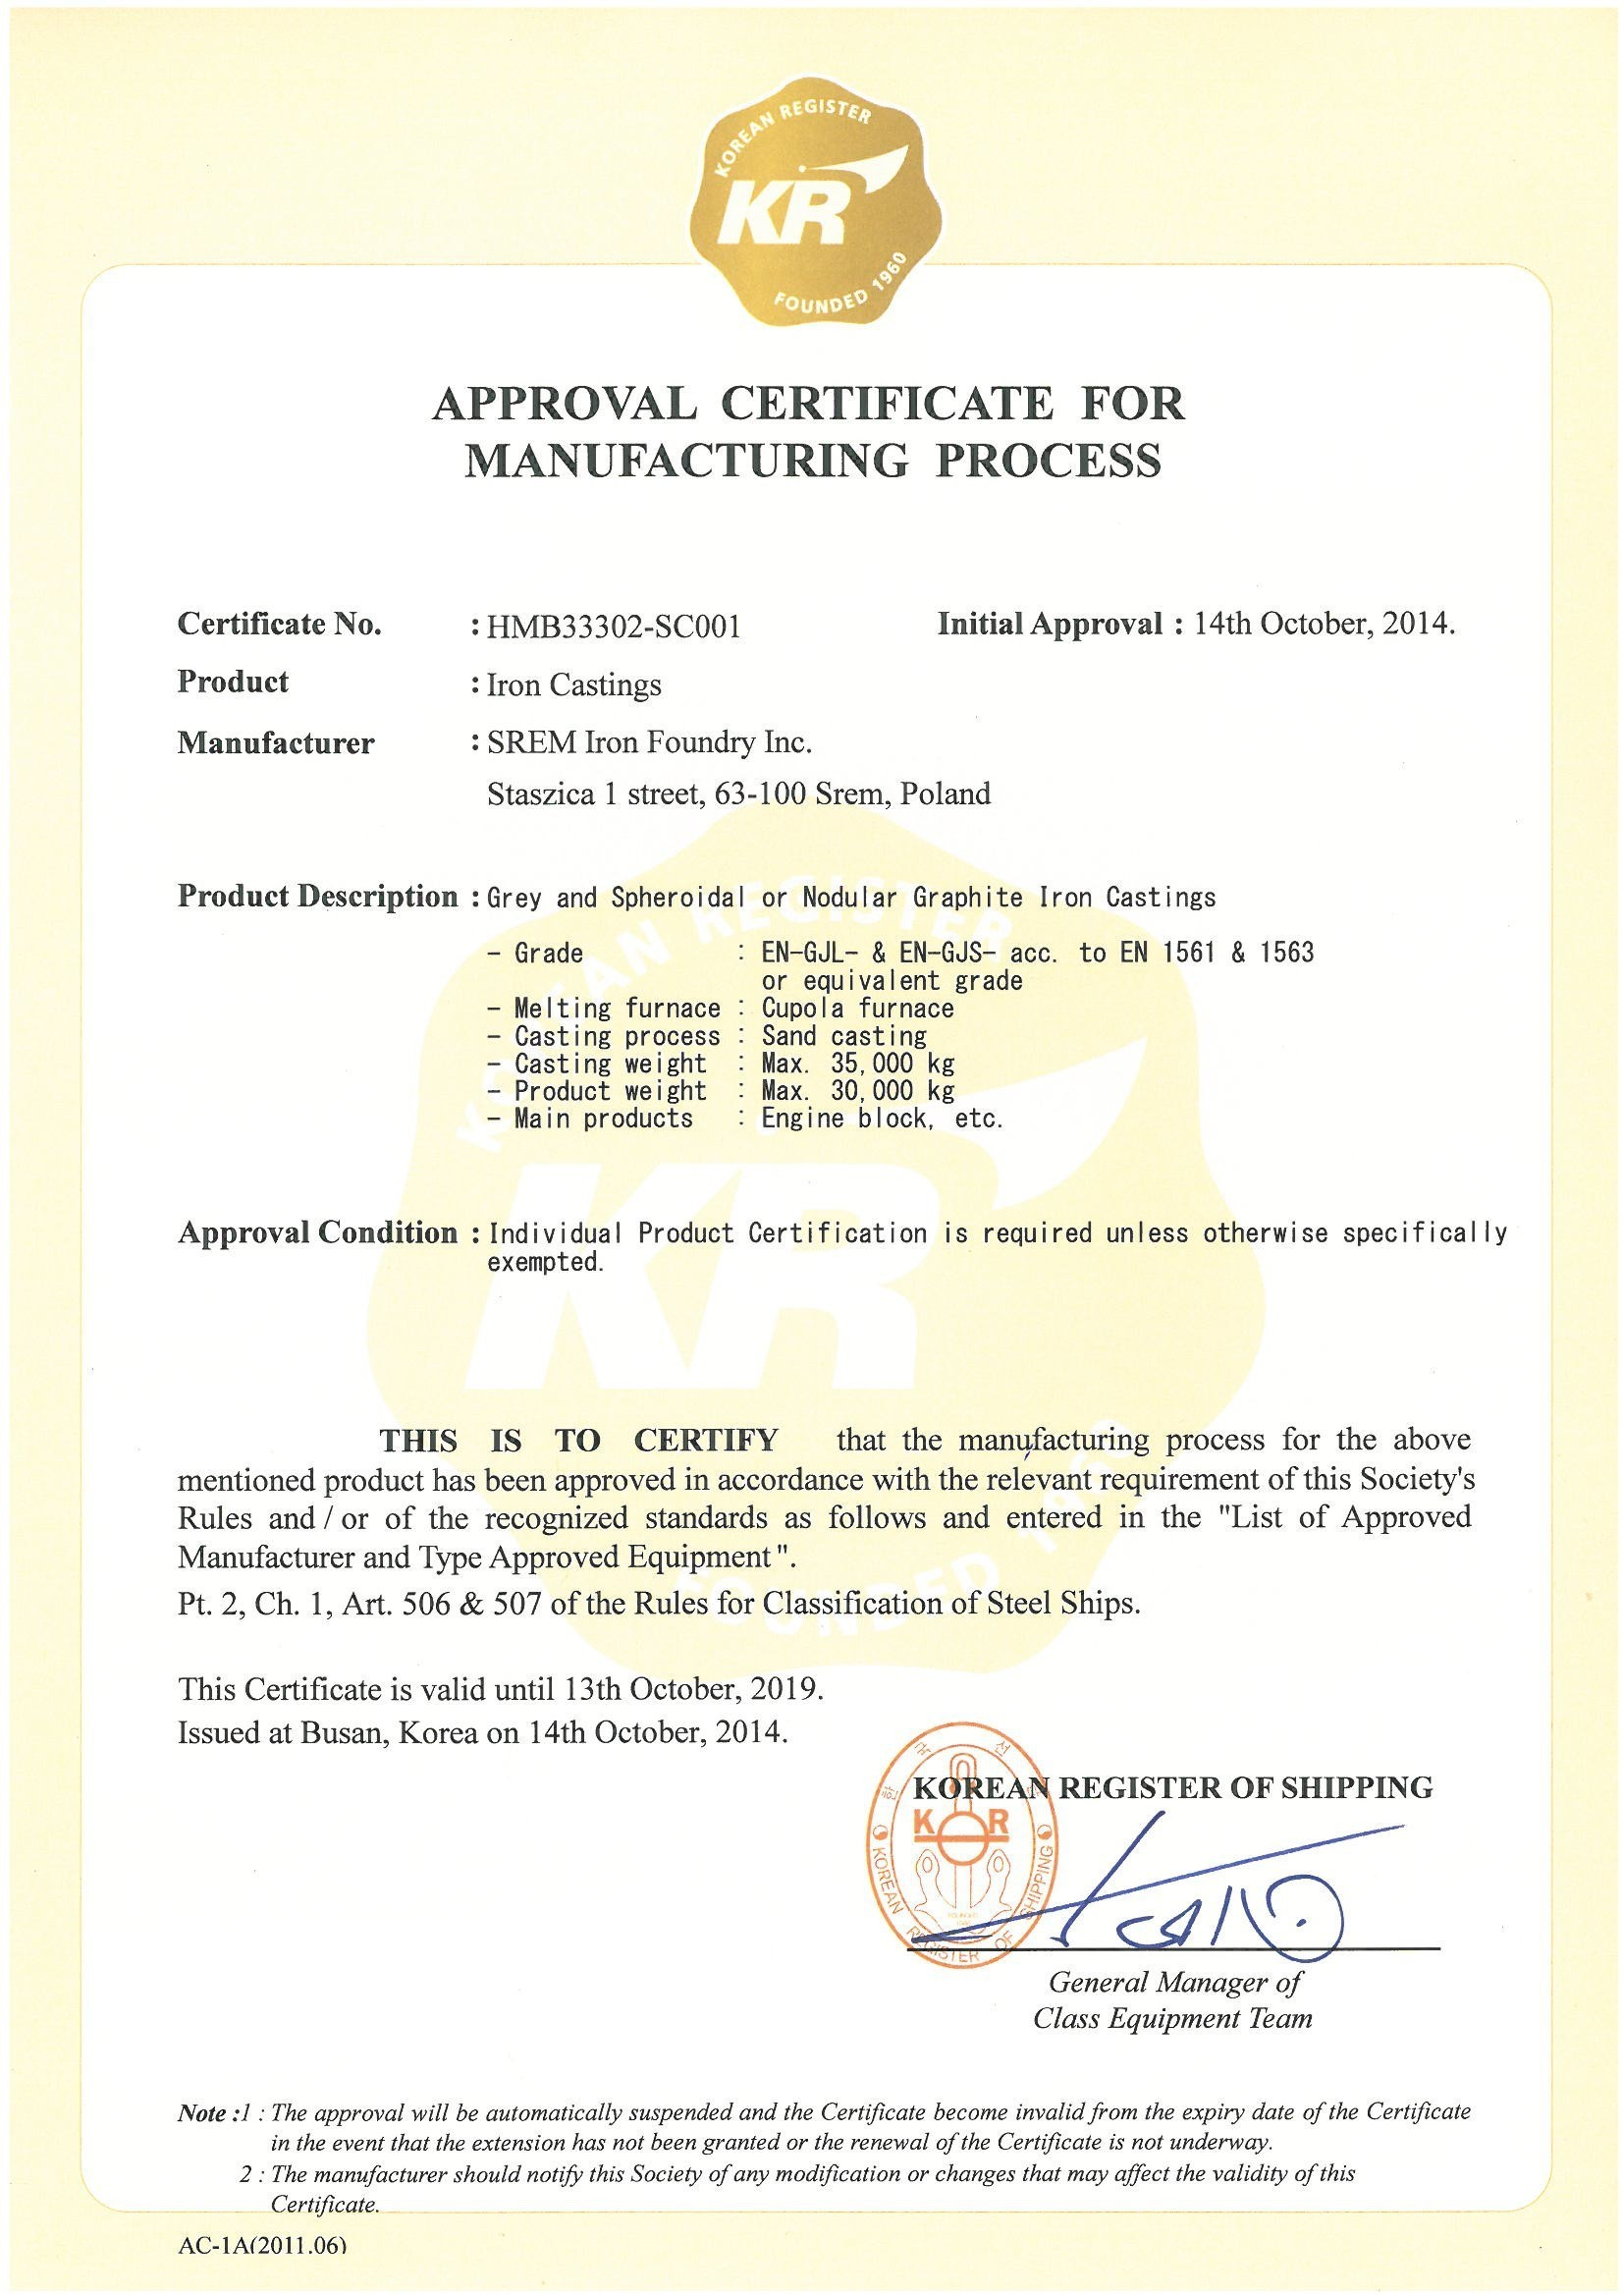 Approval Certificate for Manufacturing Process